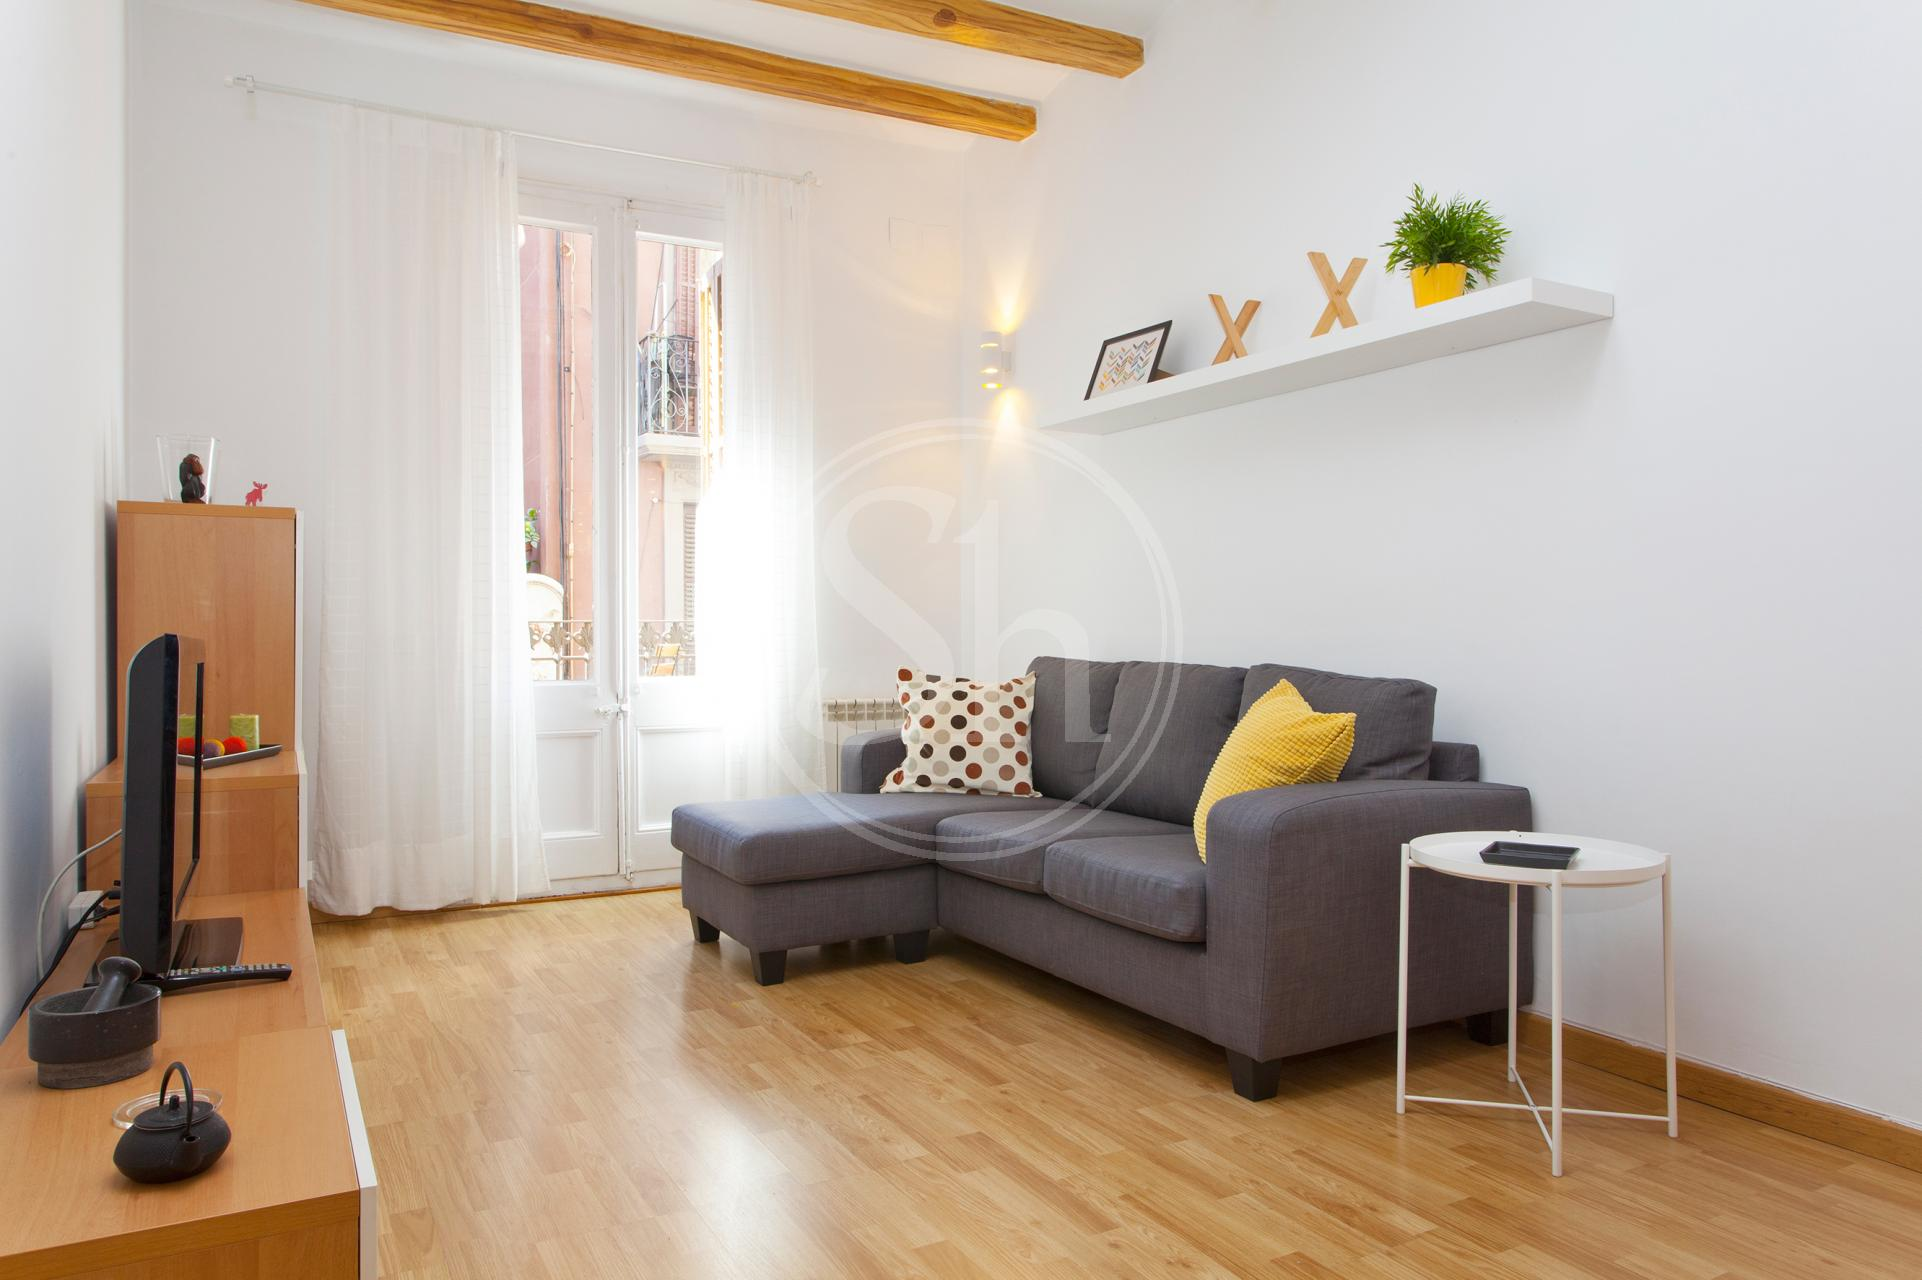 Apartment for Rent in Barcelona Passatge Prunera - Paral·lel (wi-fi Soon)